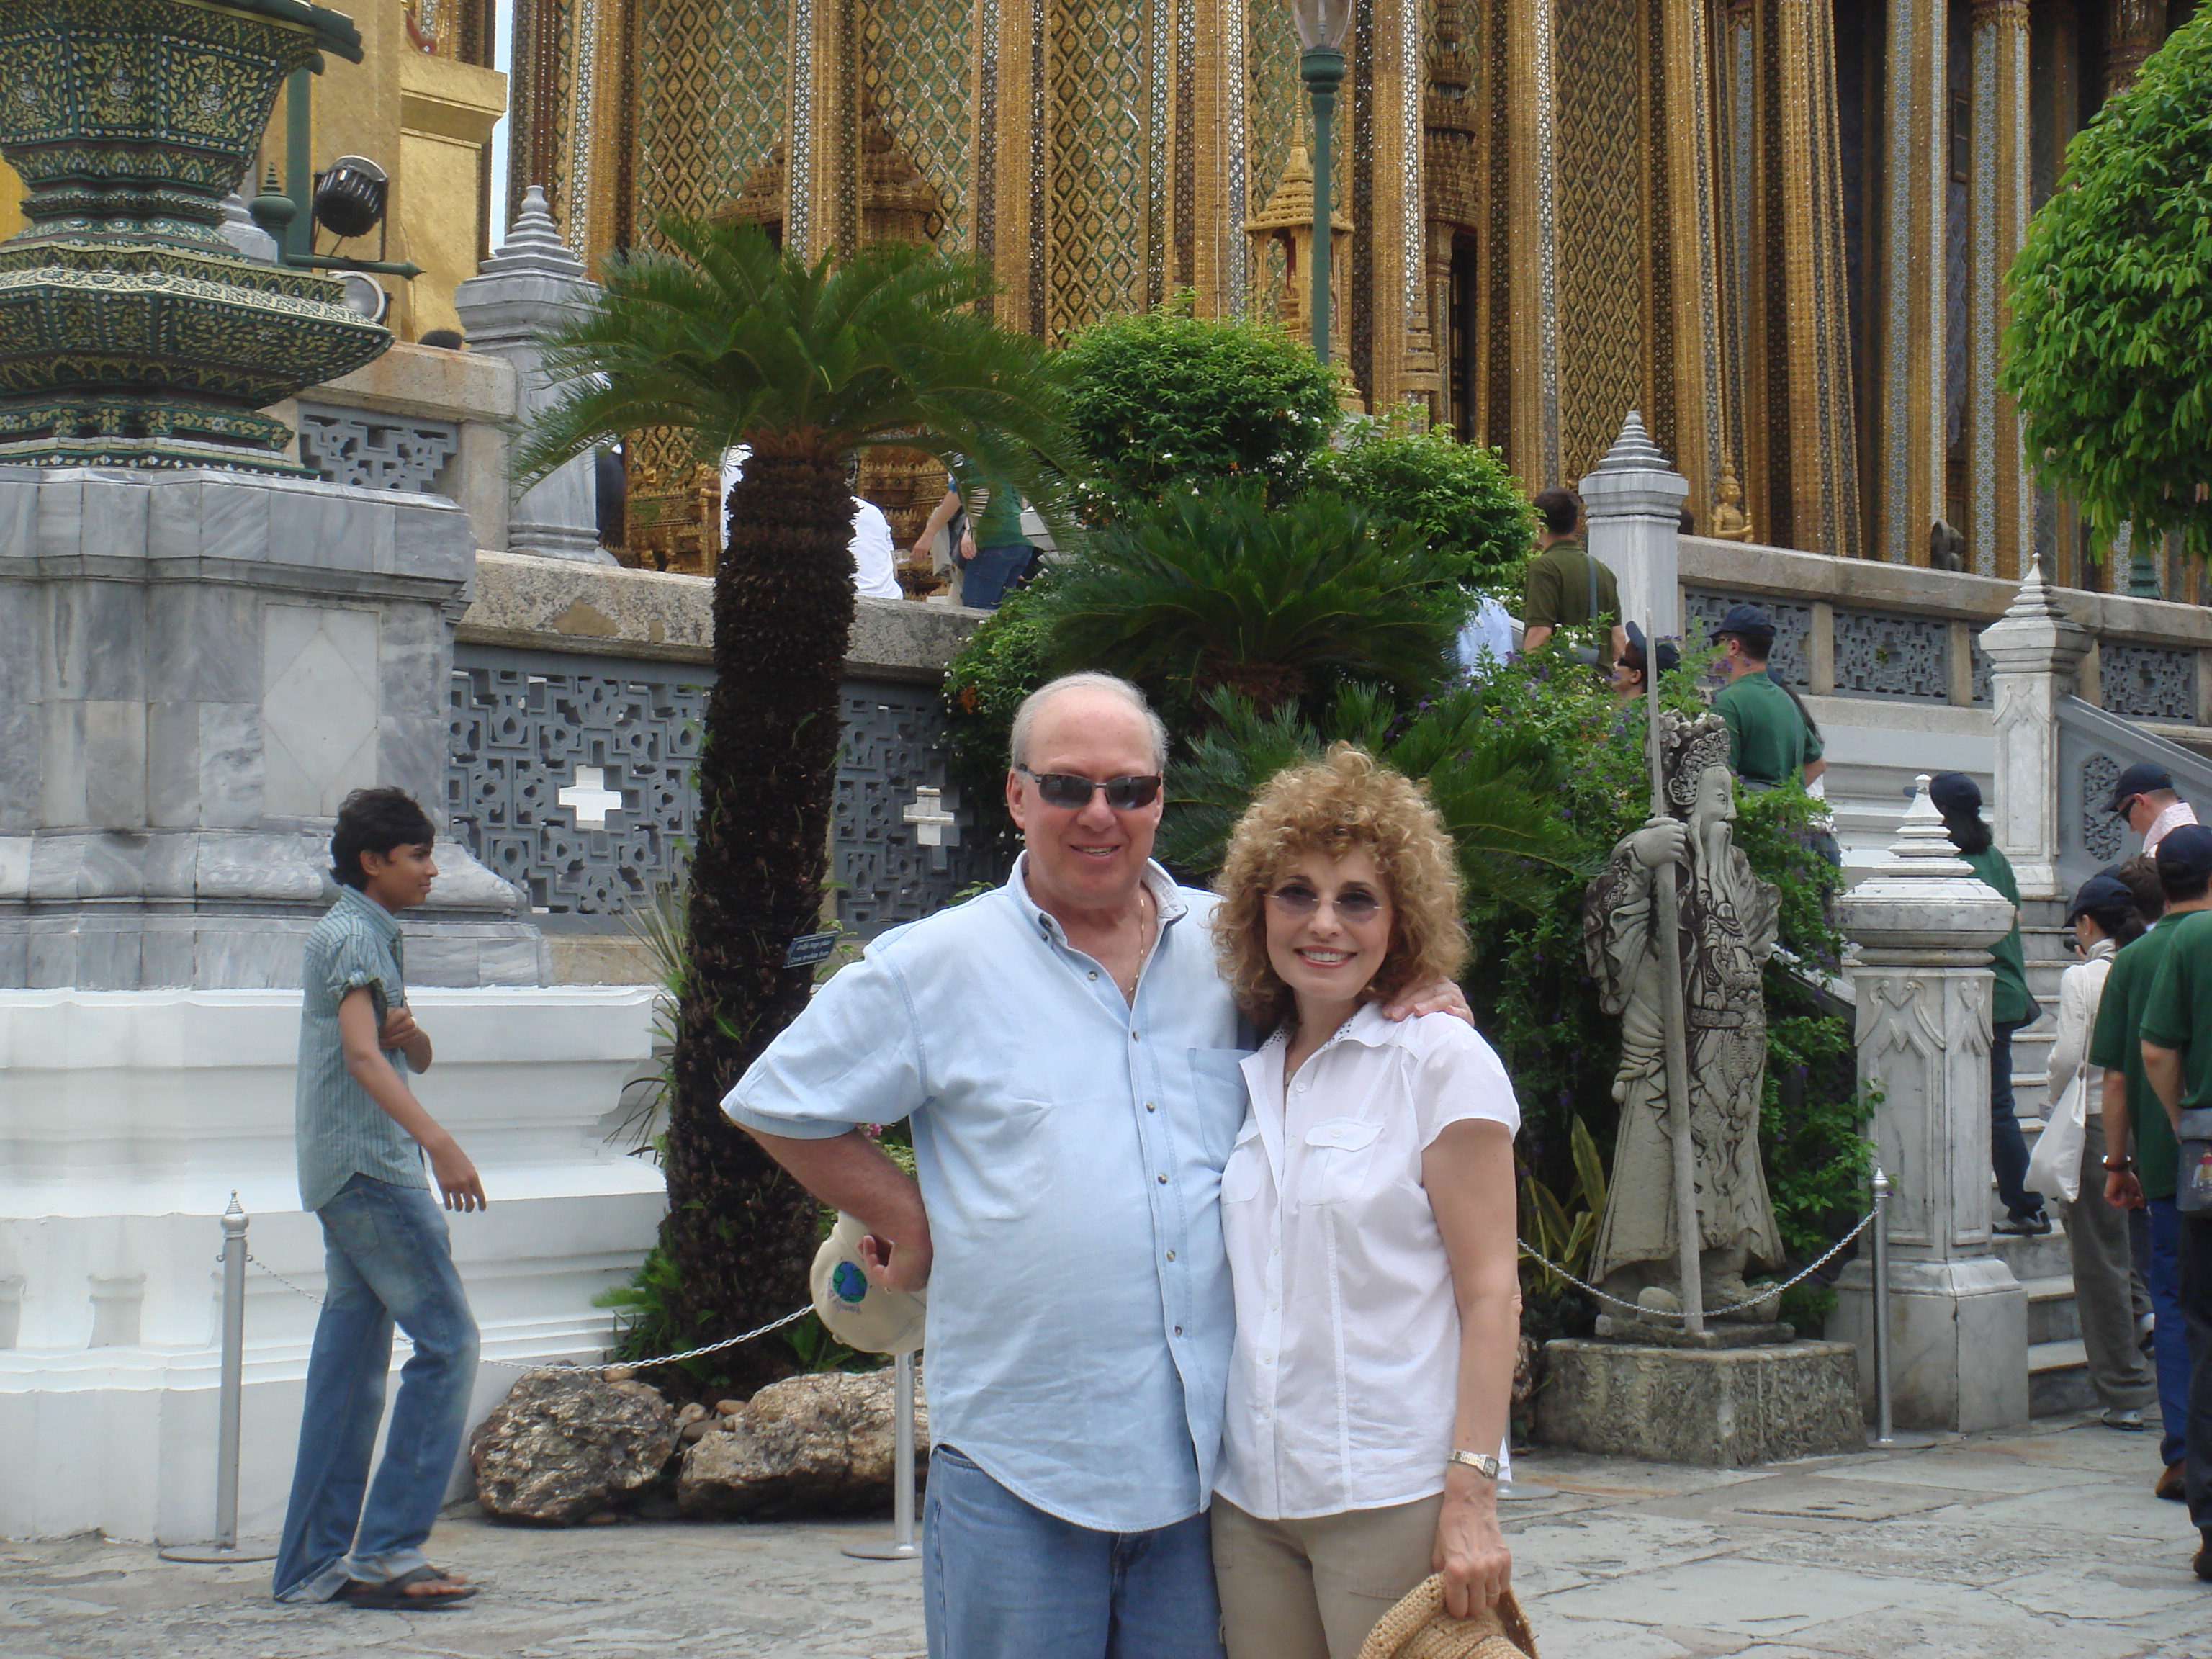 Peggy & husband Ilan in Thailand.